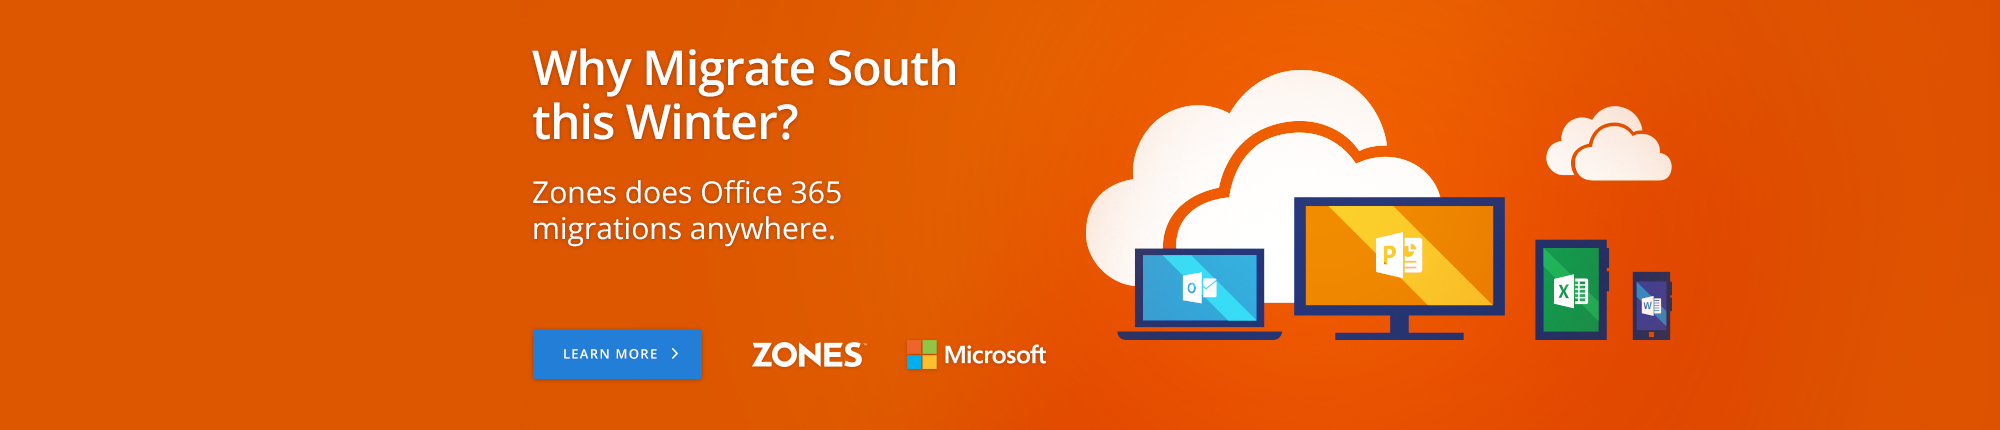 Why Migrate South this Winter? Zones does Office 365 migrations anywhere.